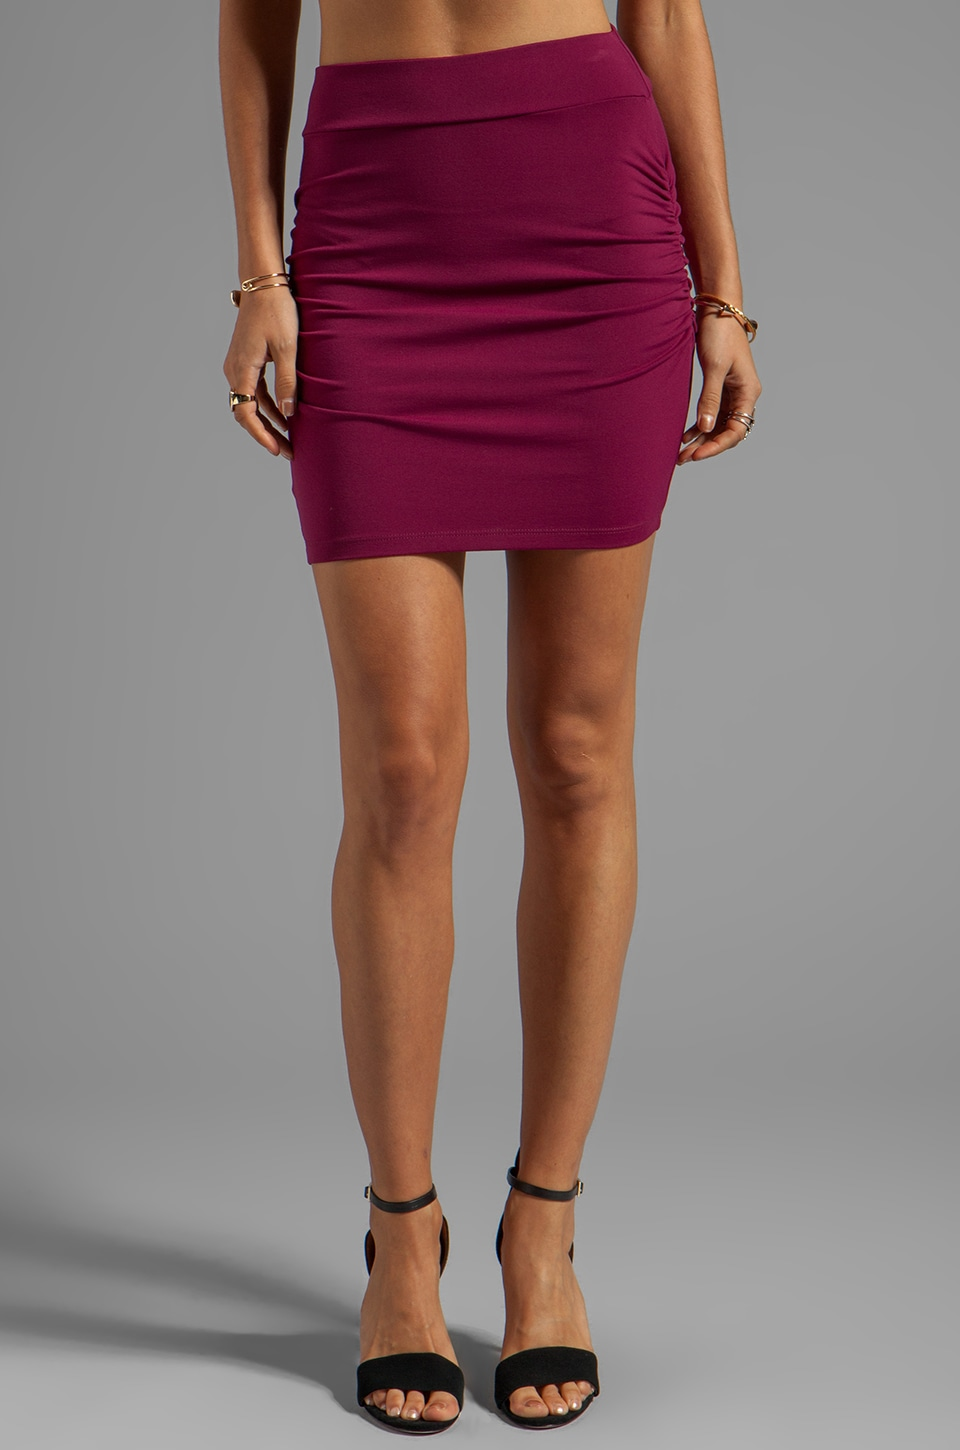 Susana Monaco Light Supplex Rouched Skirt 18